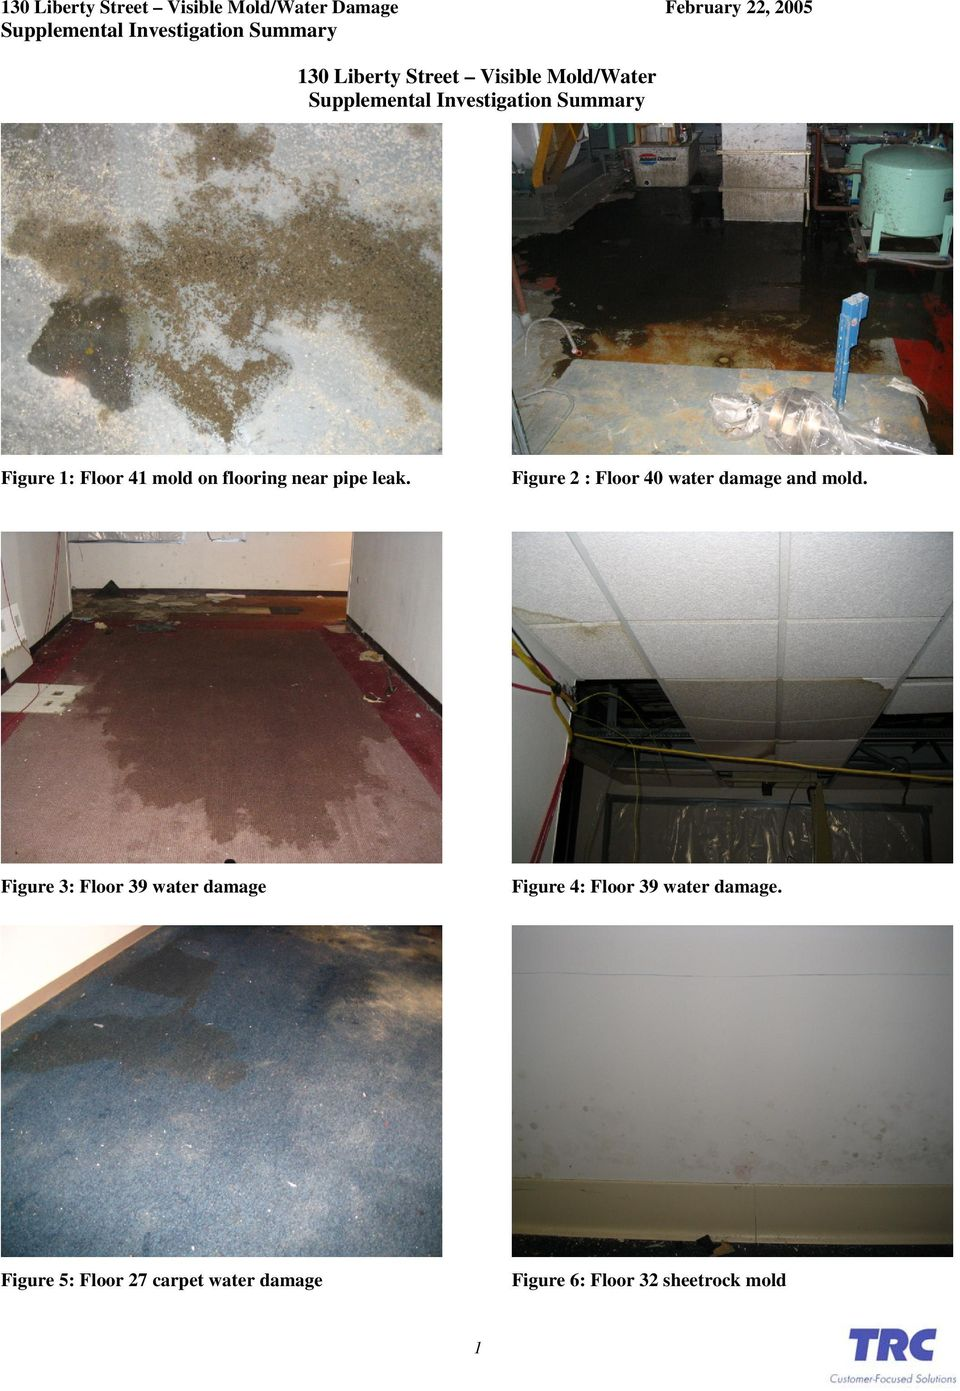 Figure 2 : Floor 40 water damage and mold.